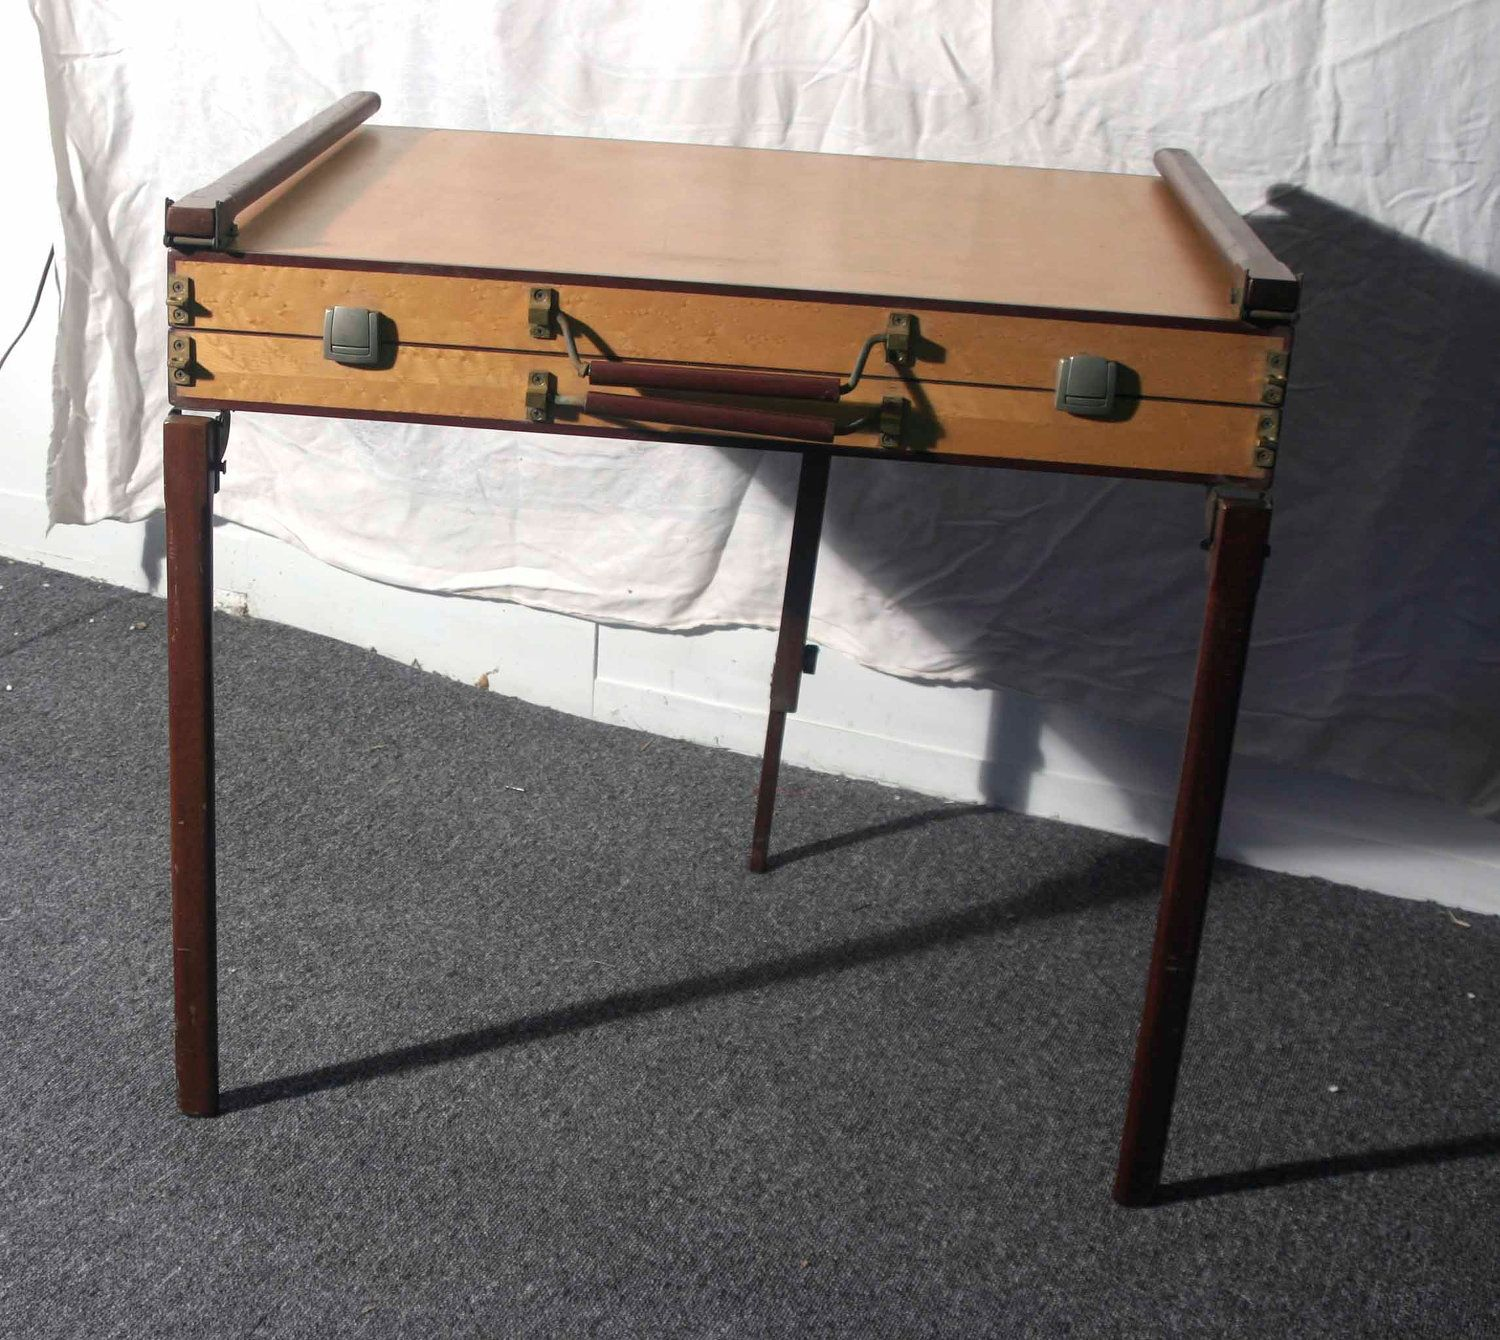 Suitcase Folding Table Suitcase Opens To Table And Display Case